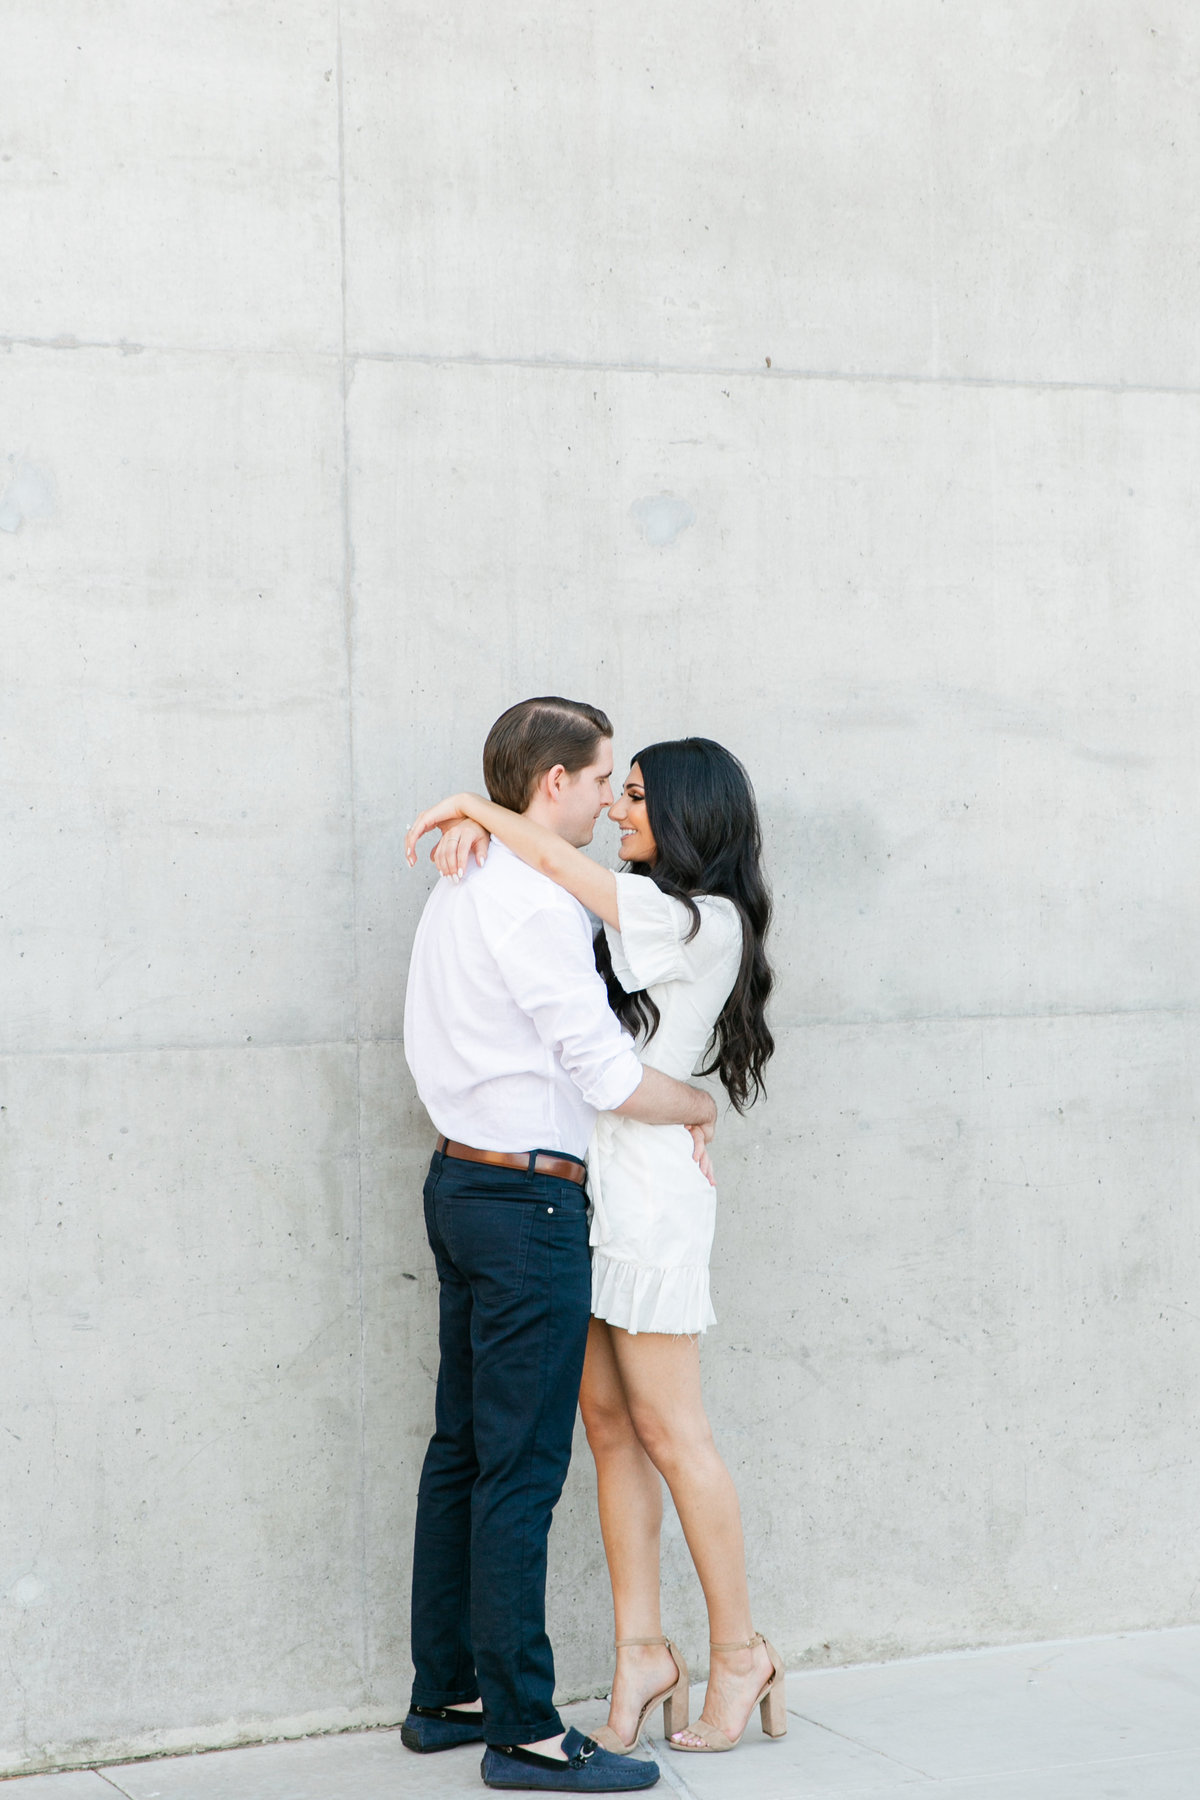 Karlie Colleen Photography - Arizona Engagement City Shoot - Kim & Tim-5